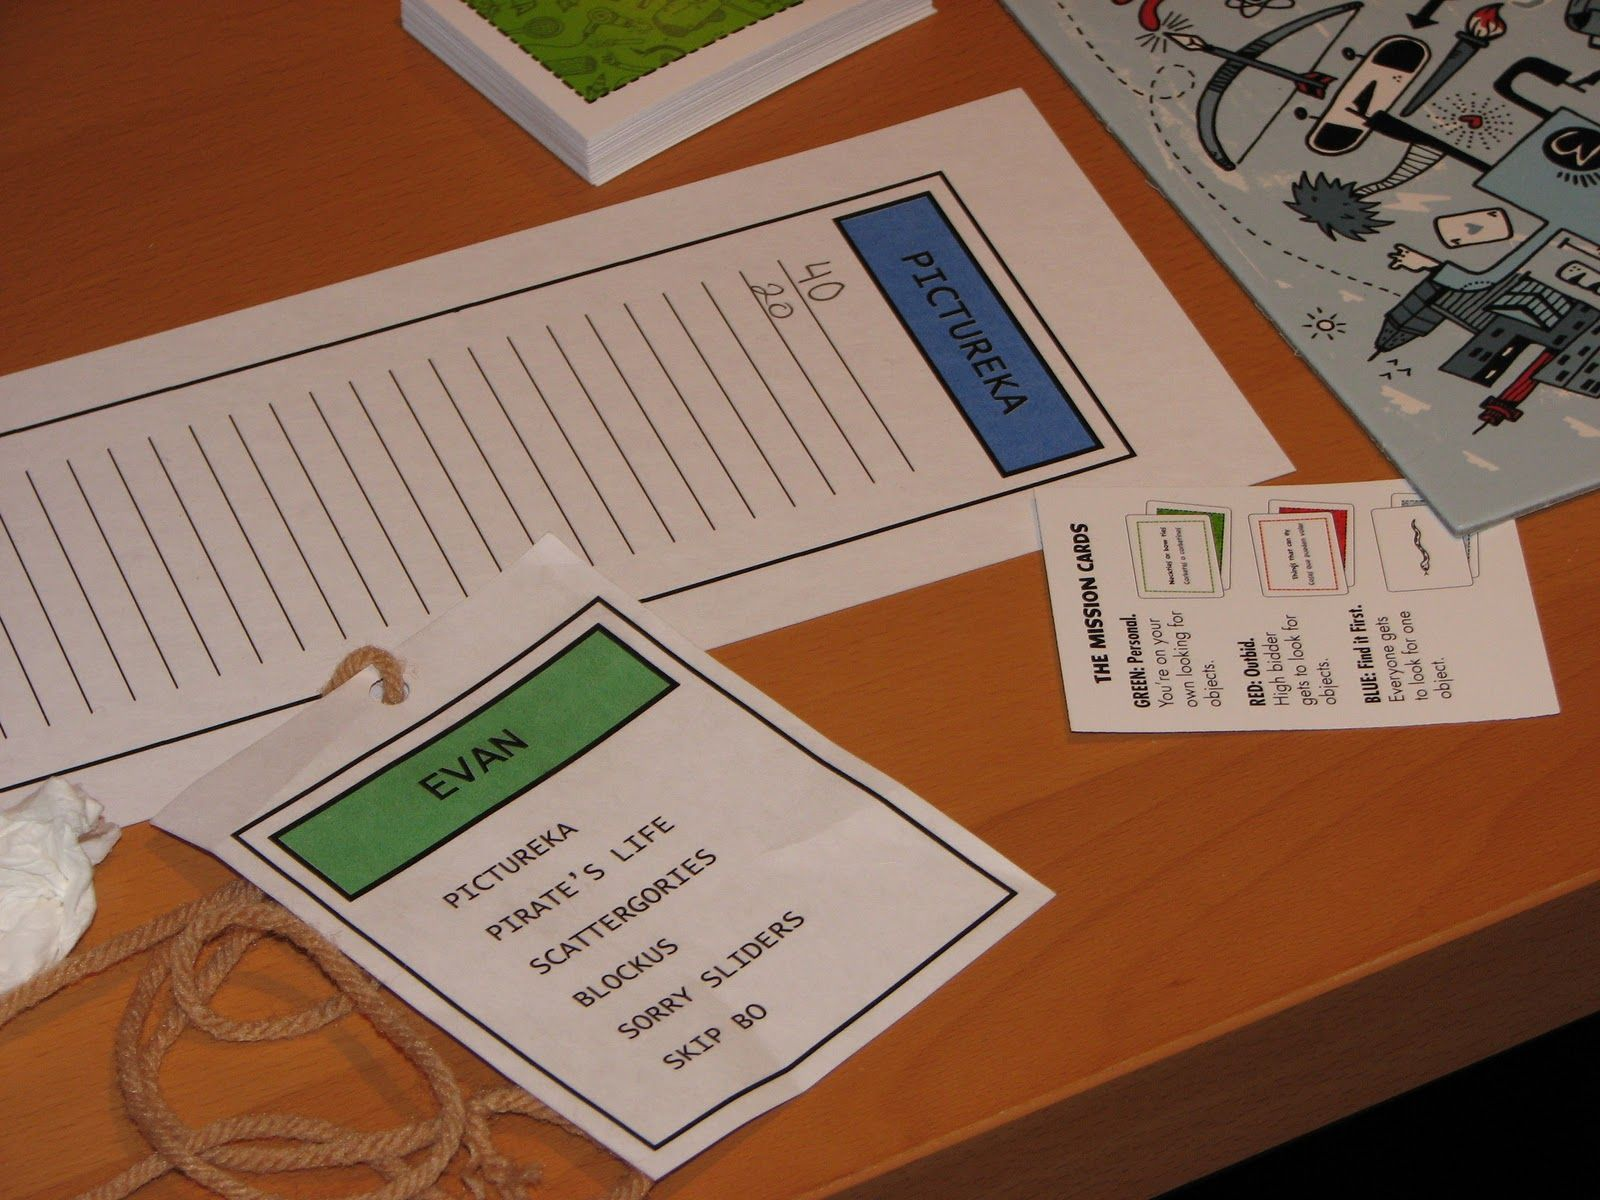 Birthday blueprint board game party includes monopoly themed birthday blueprint board game party includes monopoly themed printables malvernweather Choice Image